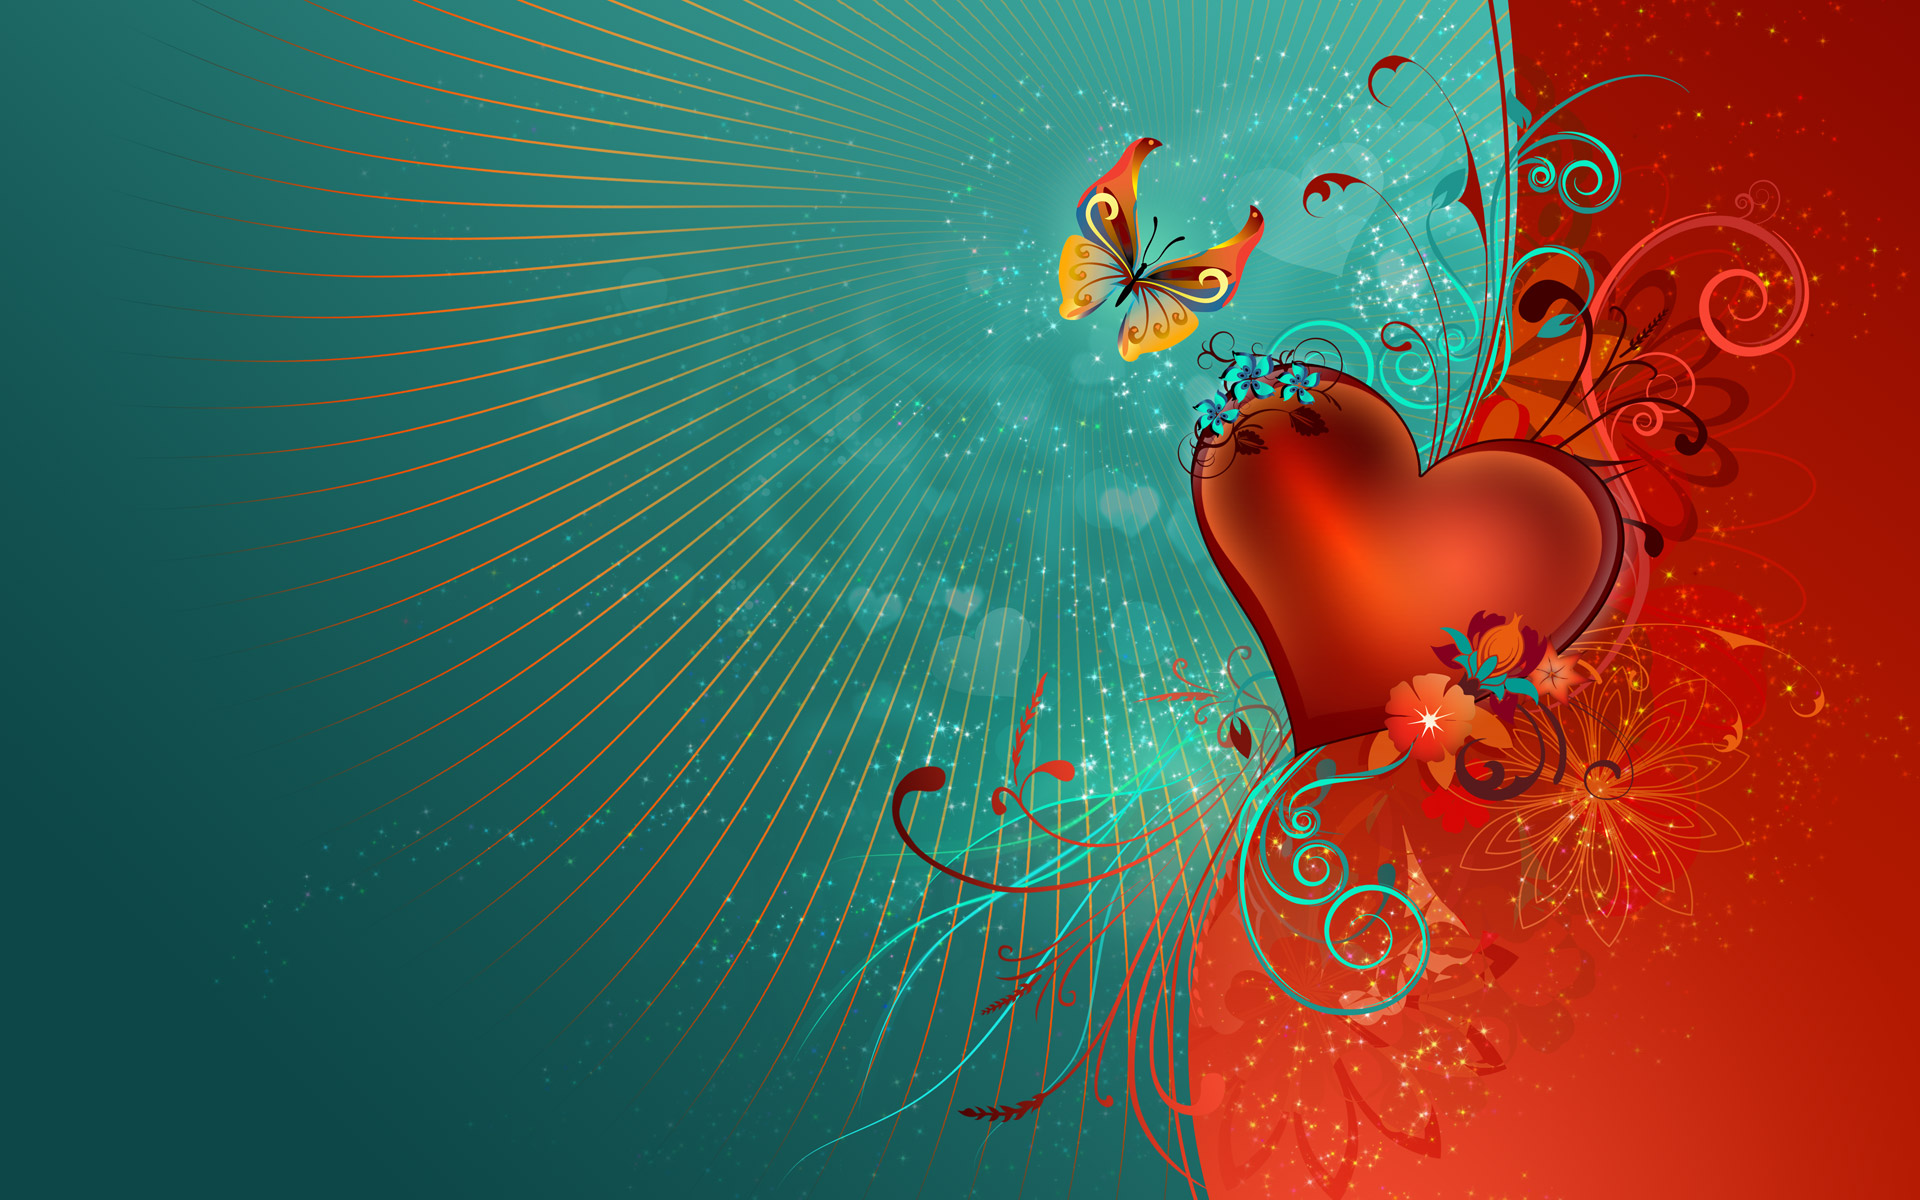 Love Heart HDTV 1080p Wallpapers | HD Wallpapers